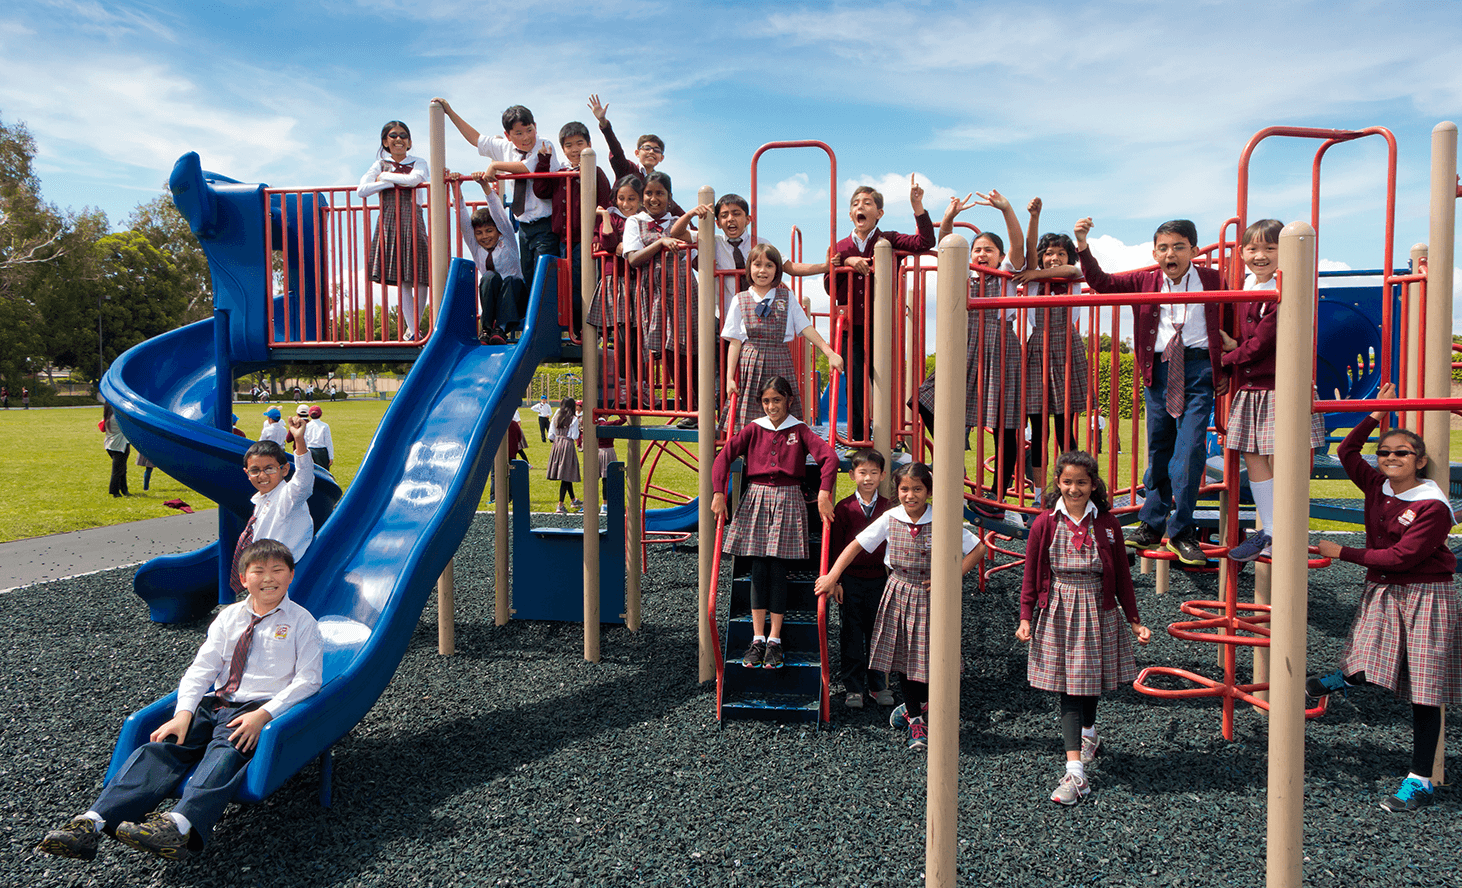 Elementary School Playground | Challenger School - Ardenwood | Private School In Newark, California